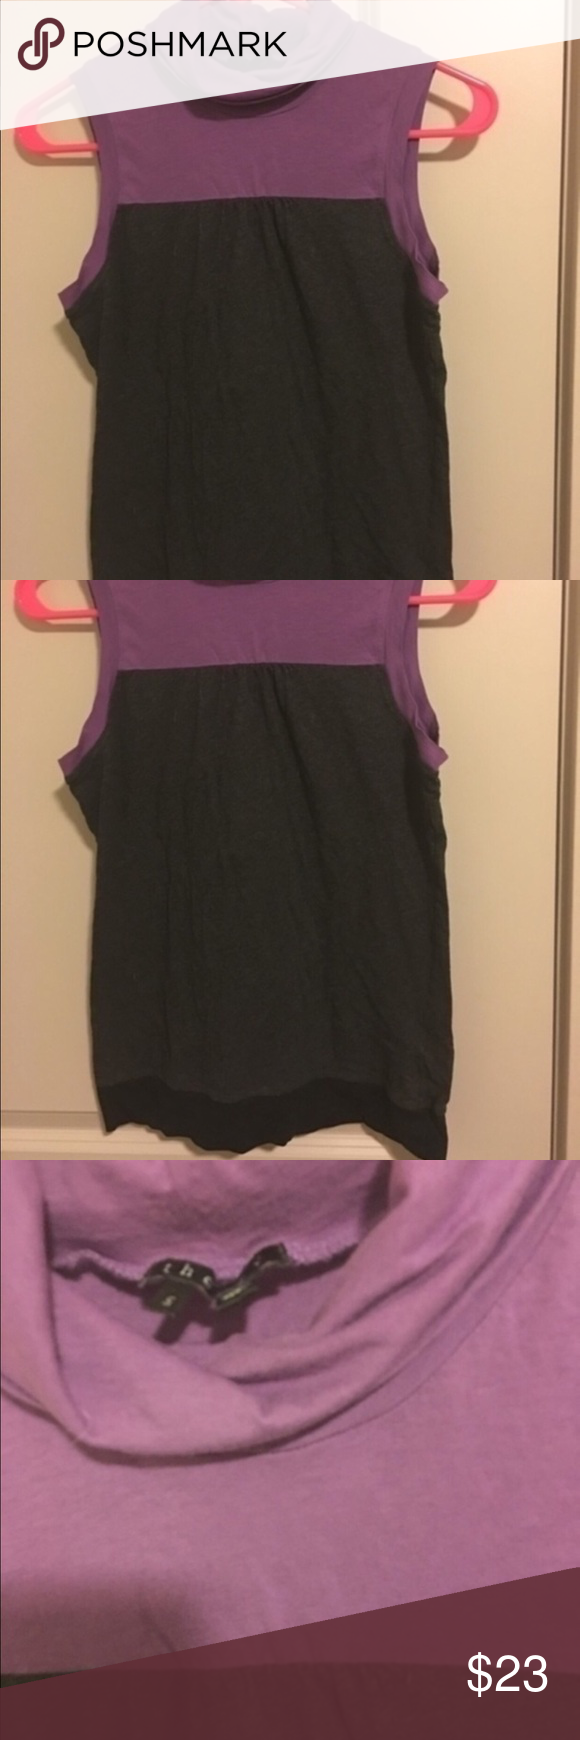 💕Theory top Theory top size small made in Peru. Material is cotton & spandex. This is a high quality designer top. It has color block style  with purple, gray, and black. This is turtle neck style and sleeveless. It is semi longer in length making it great with leggings also works nice under a sweater. This is in excellent preowned shape Final sale no returns Theory Tops